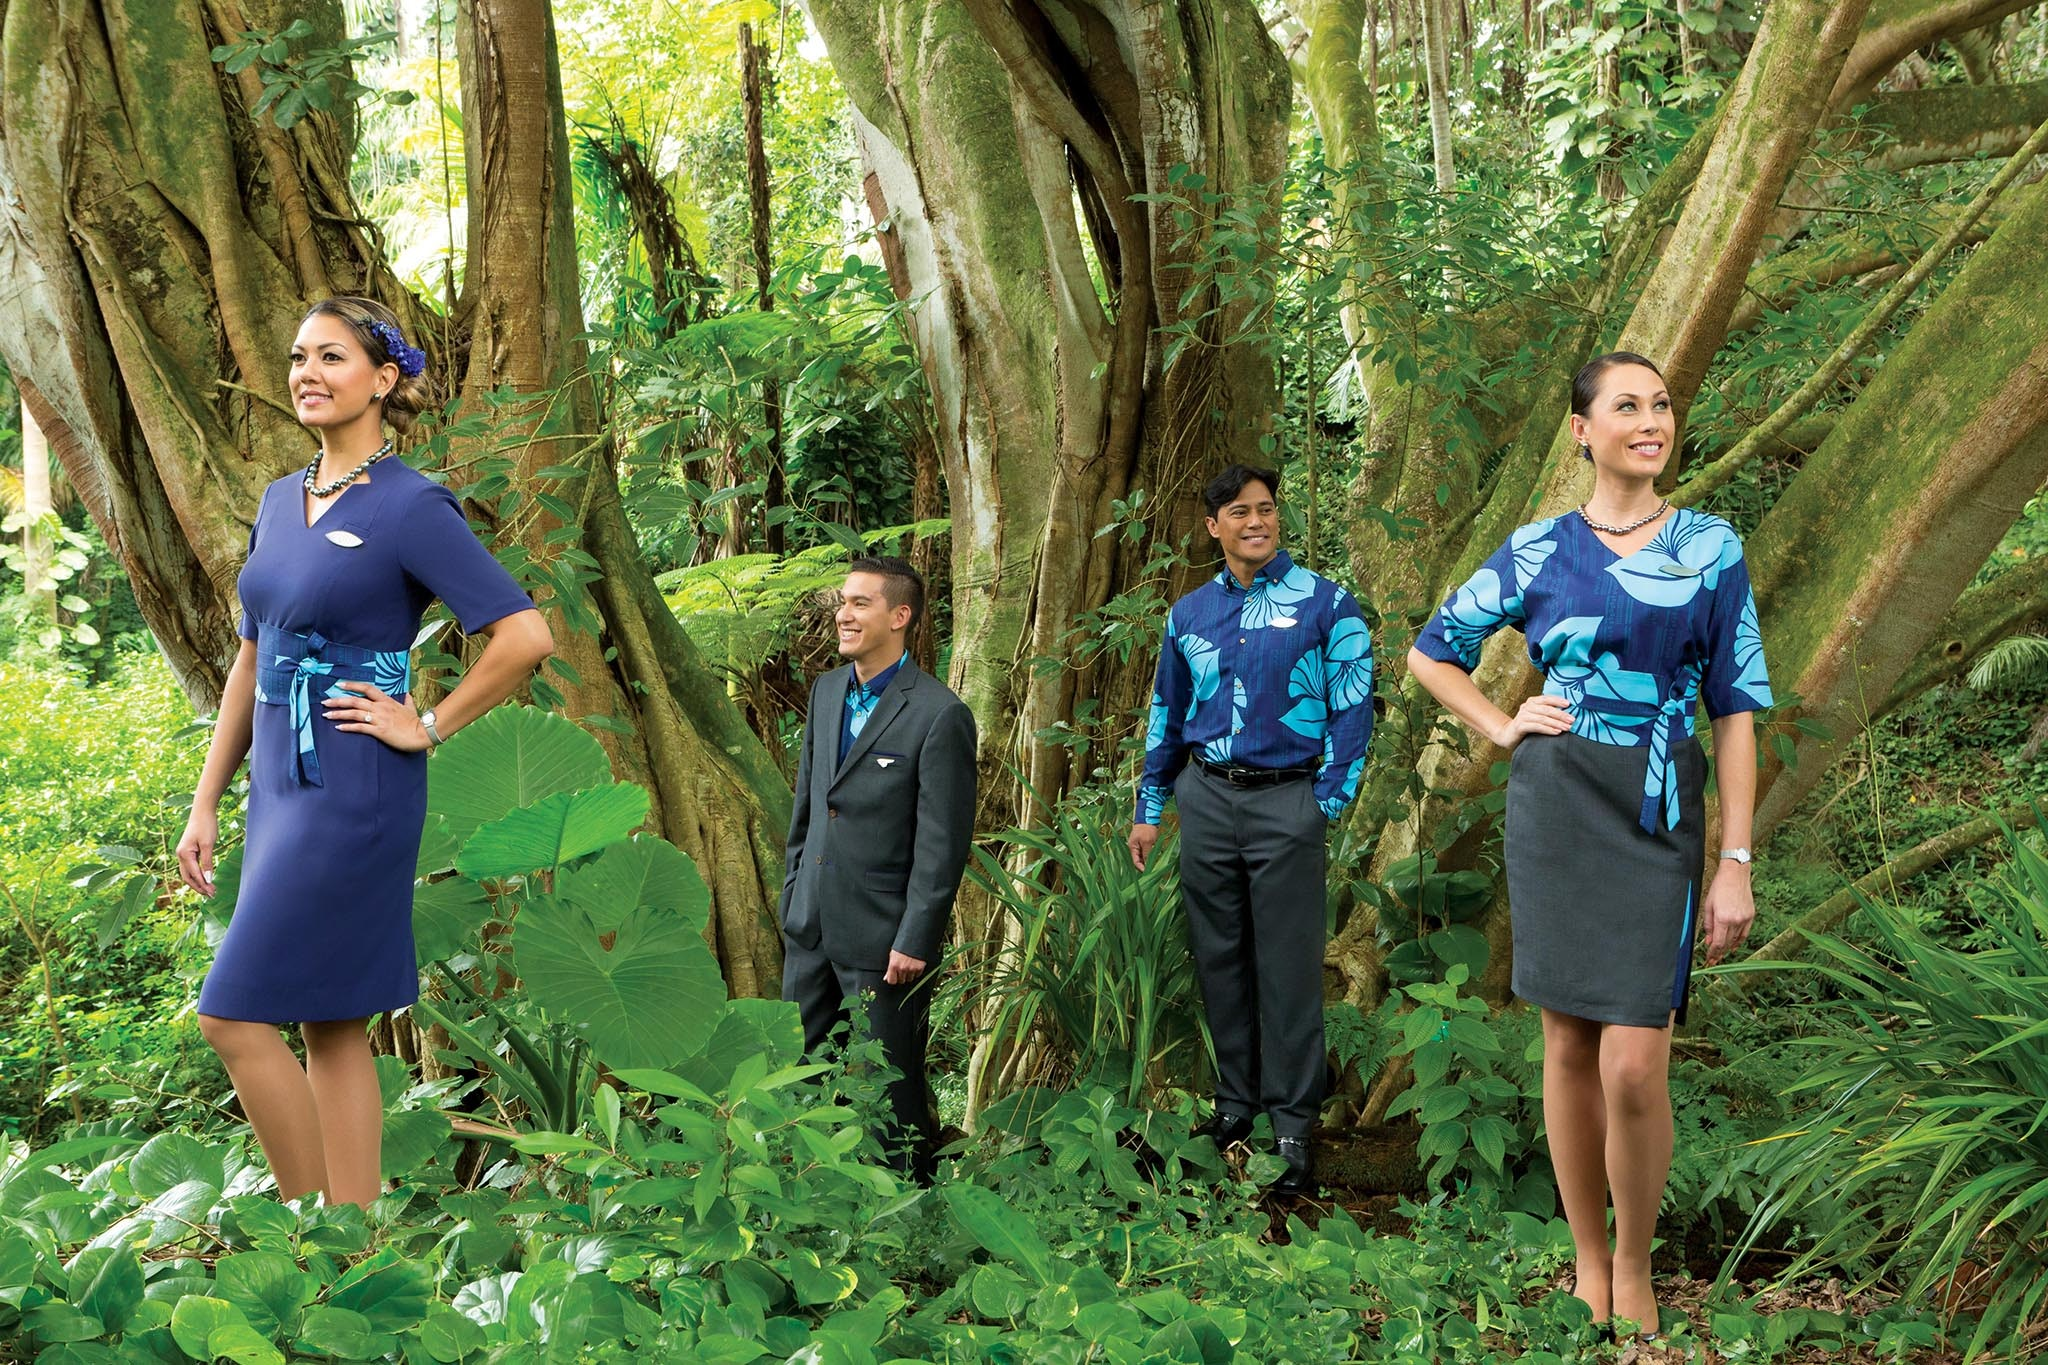 Hawaiian designer Sig Zane brought organic-inspired prints to Hawaiian Airlines uniforms in 2016.